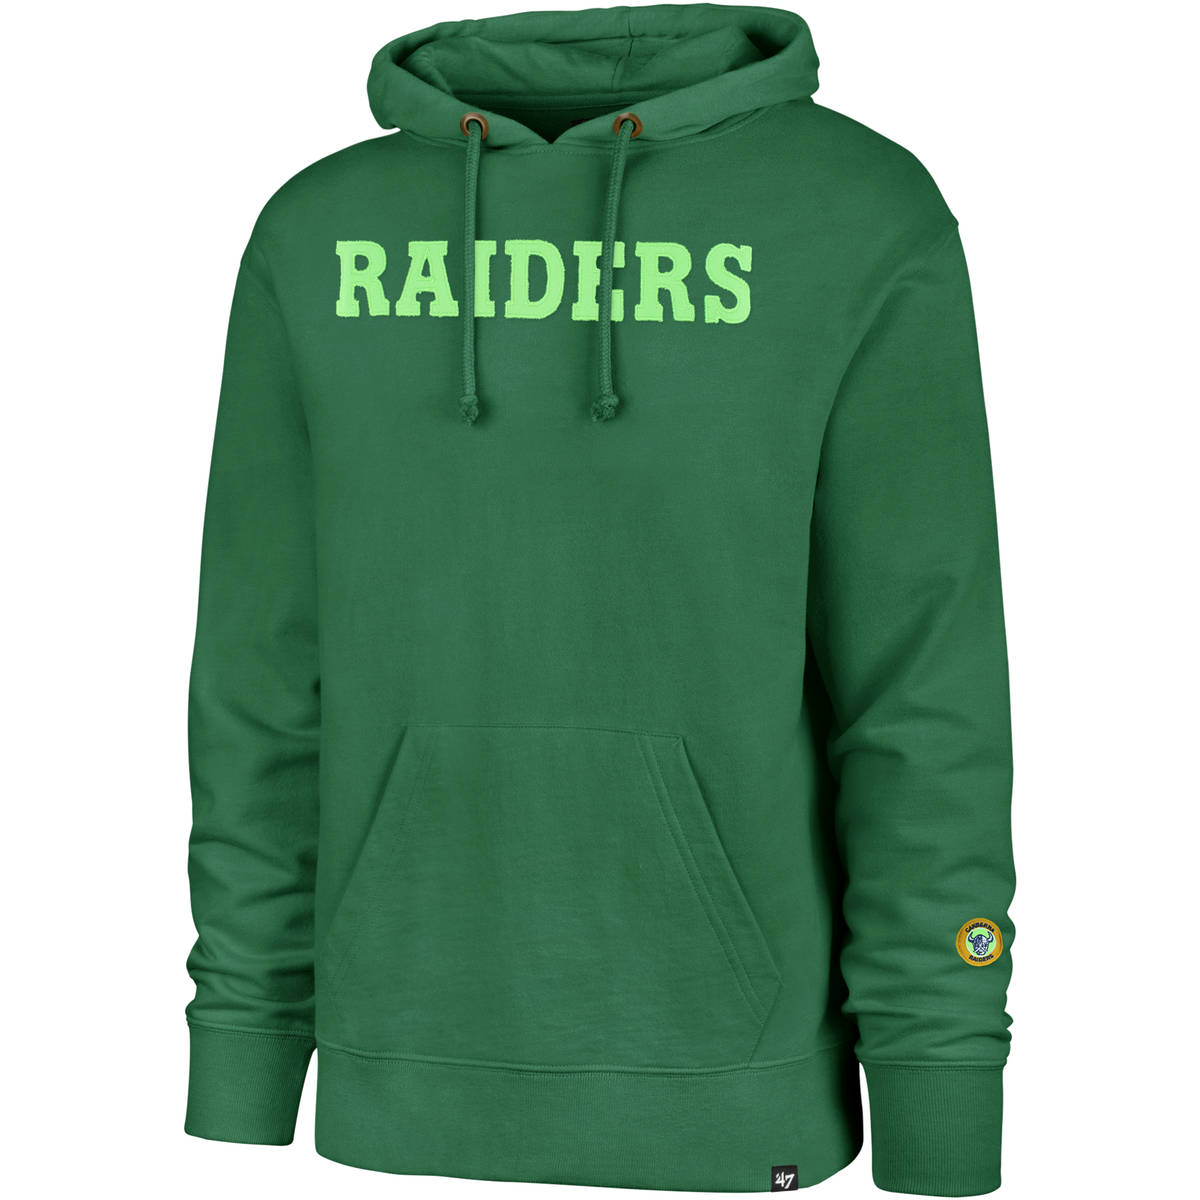 mainAdults Striker Hoody1